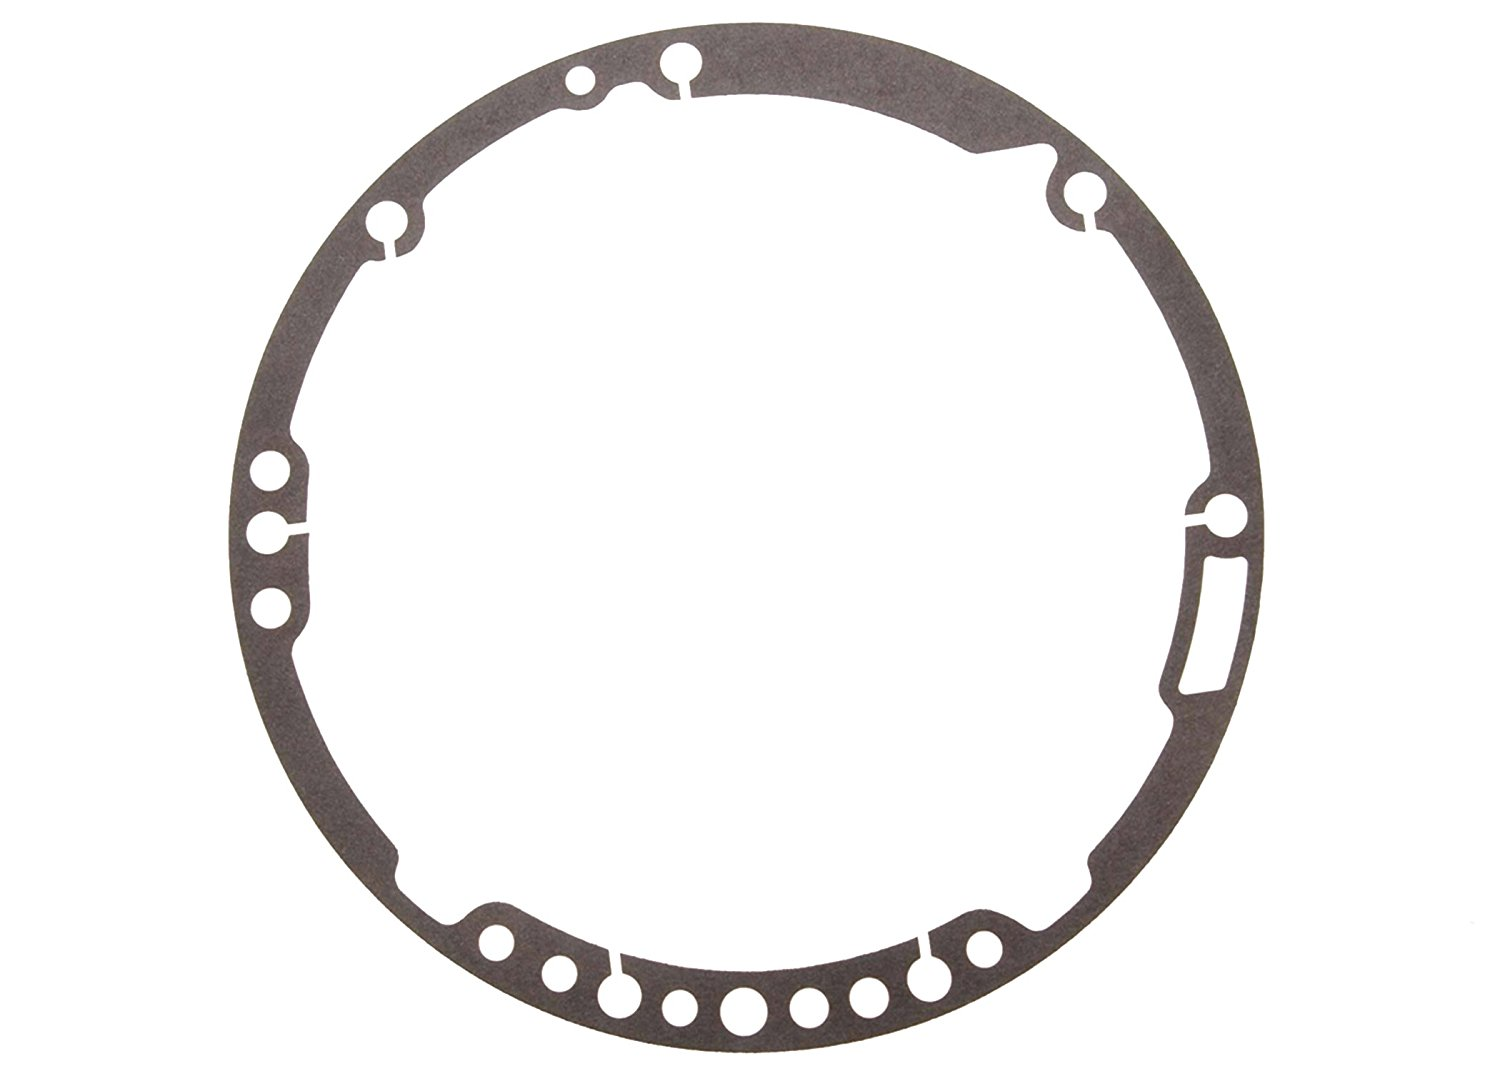 8677782 GM Original Equipment Automatic Transmission Fluid Pump Cover Gasket, GM-recommended replacement part... by ACDelco